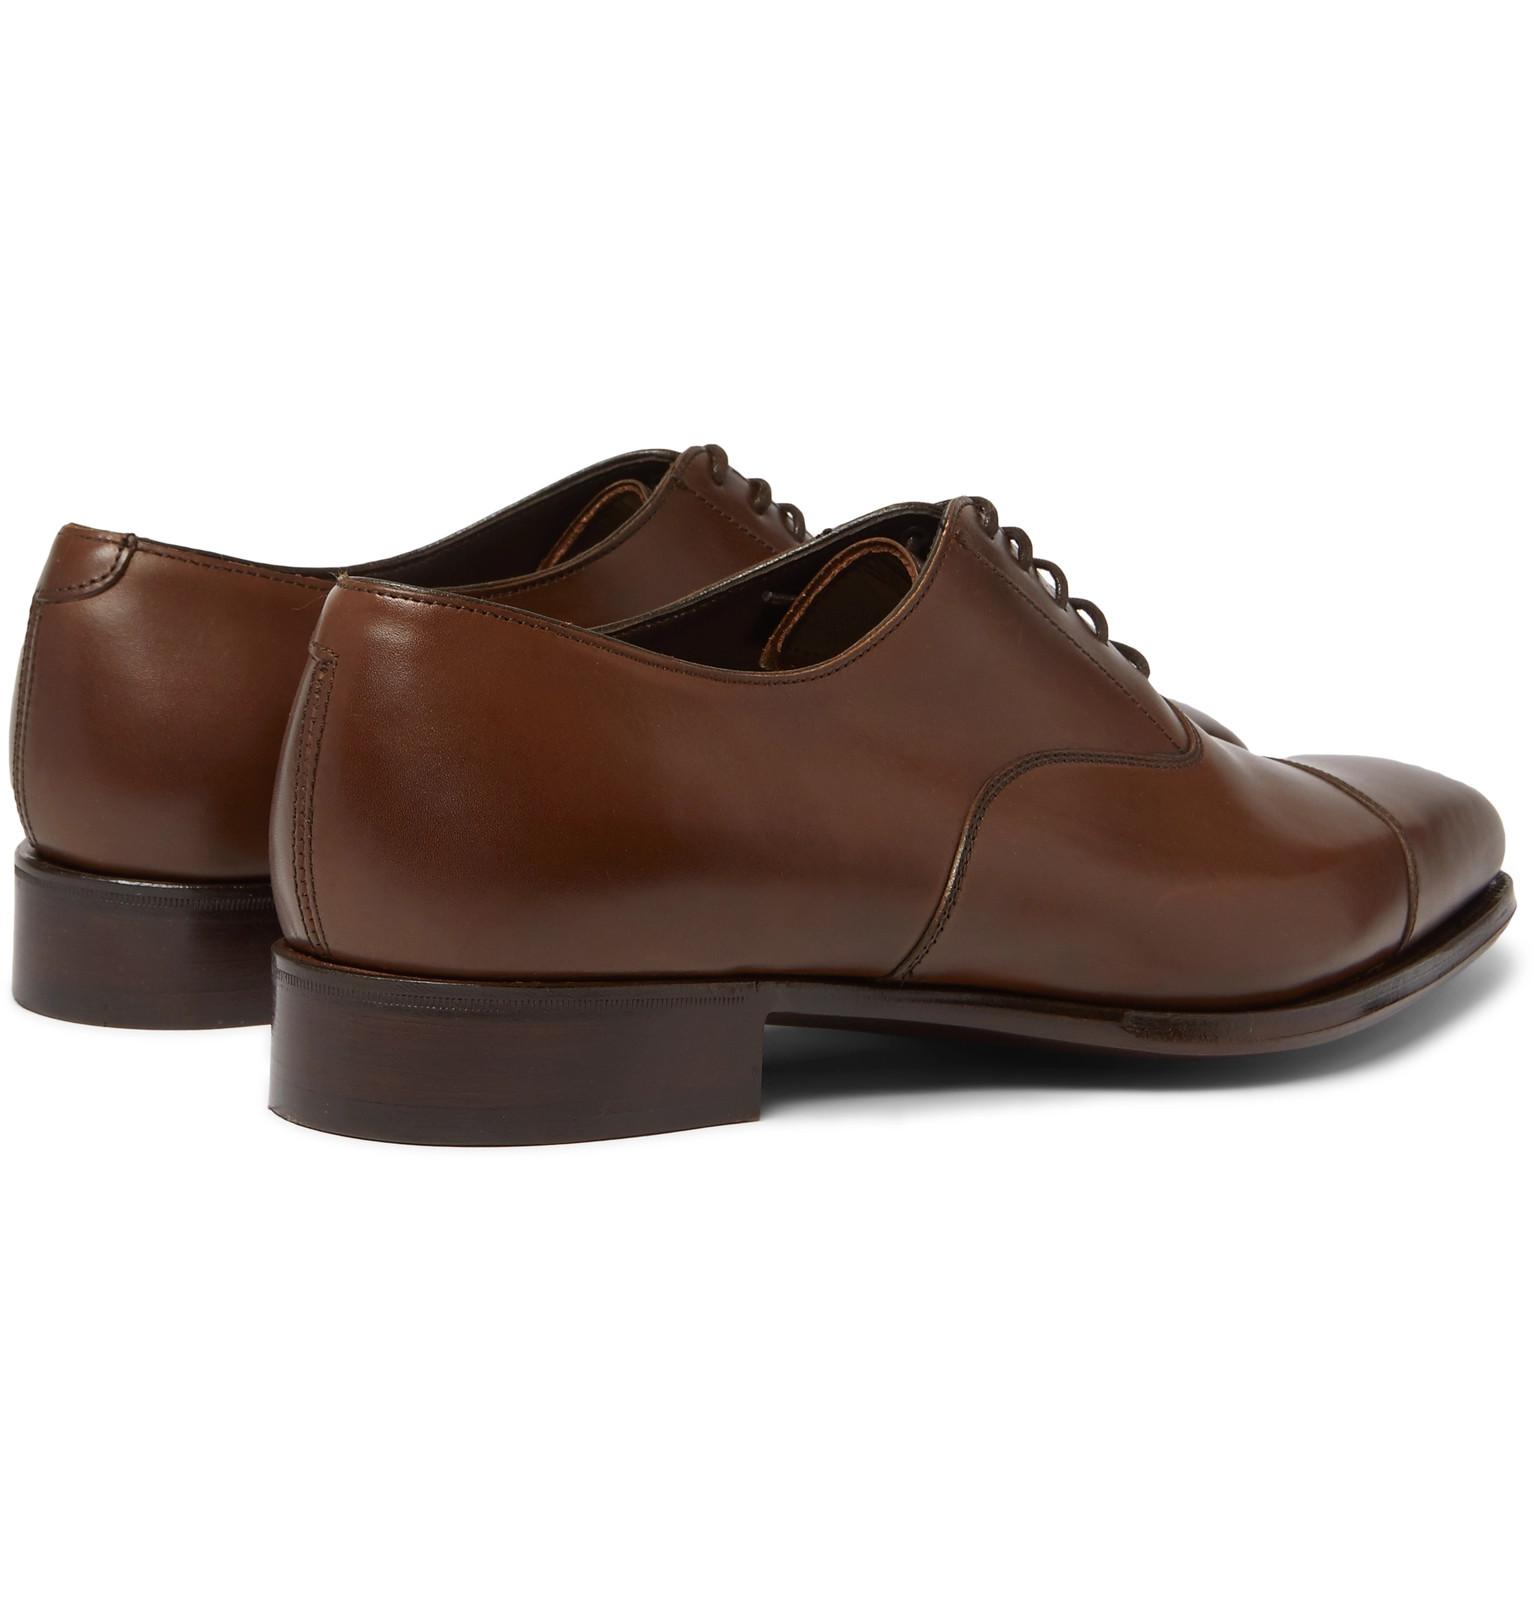 7d6fac85e8025f Lyst - Kingsman + George Cleverley Harry Leather Oxford Shoes in ...